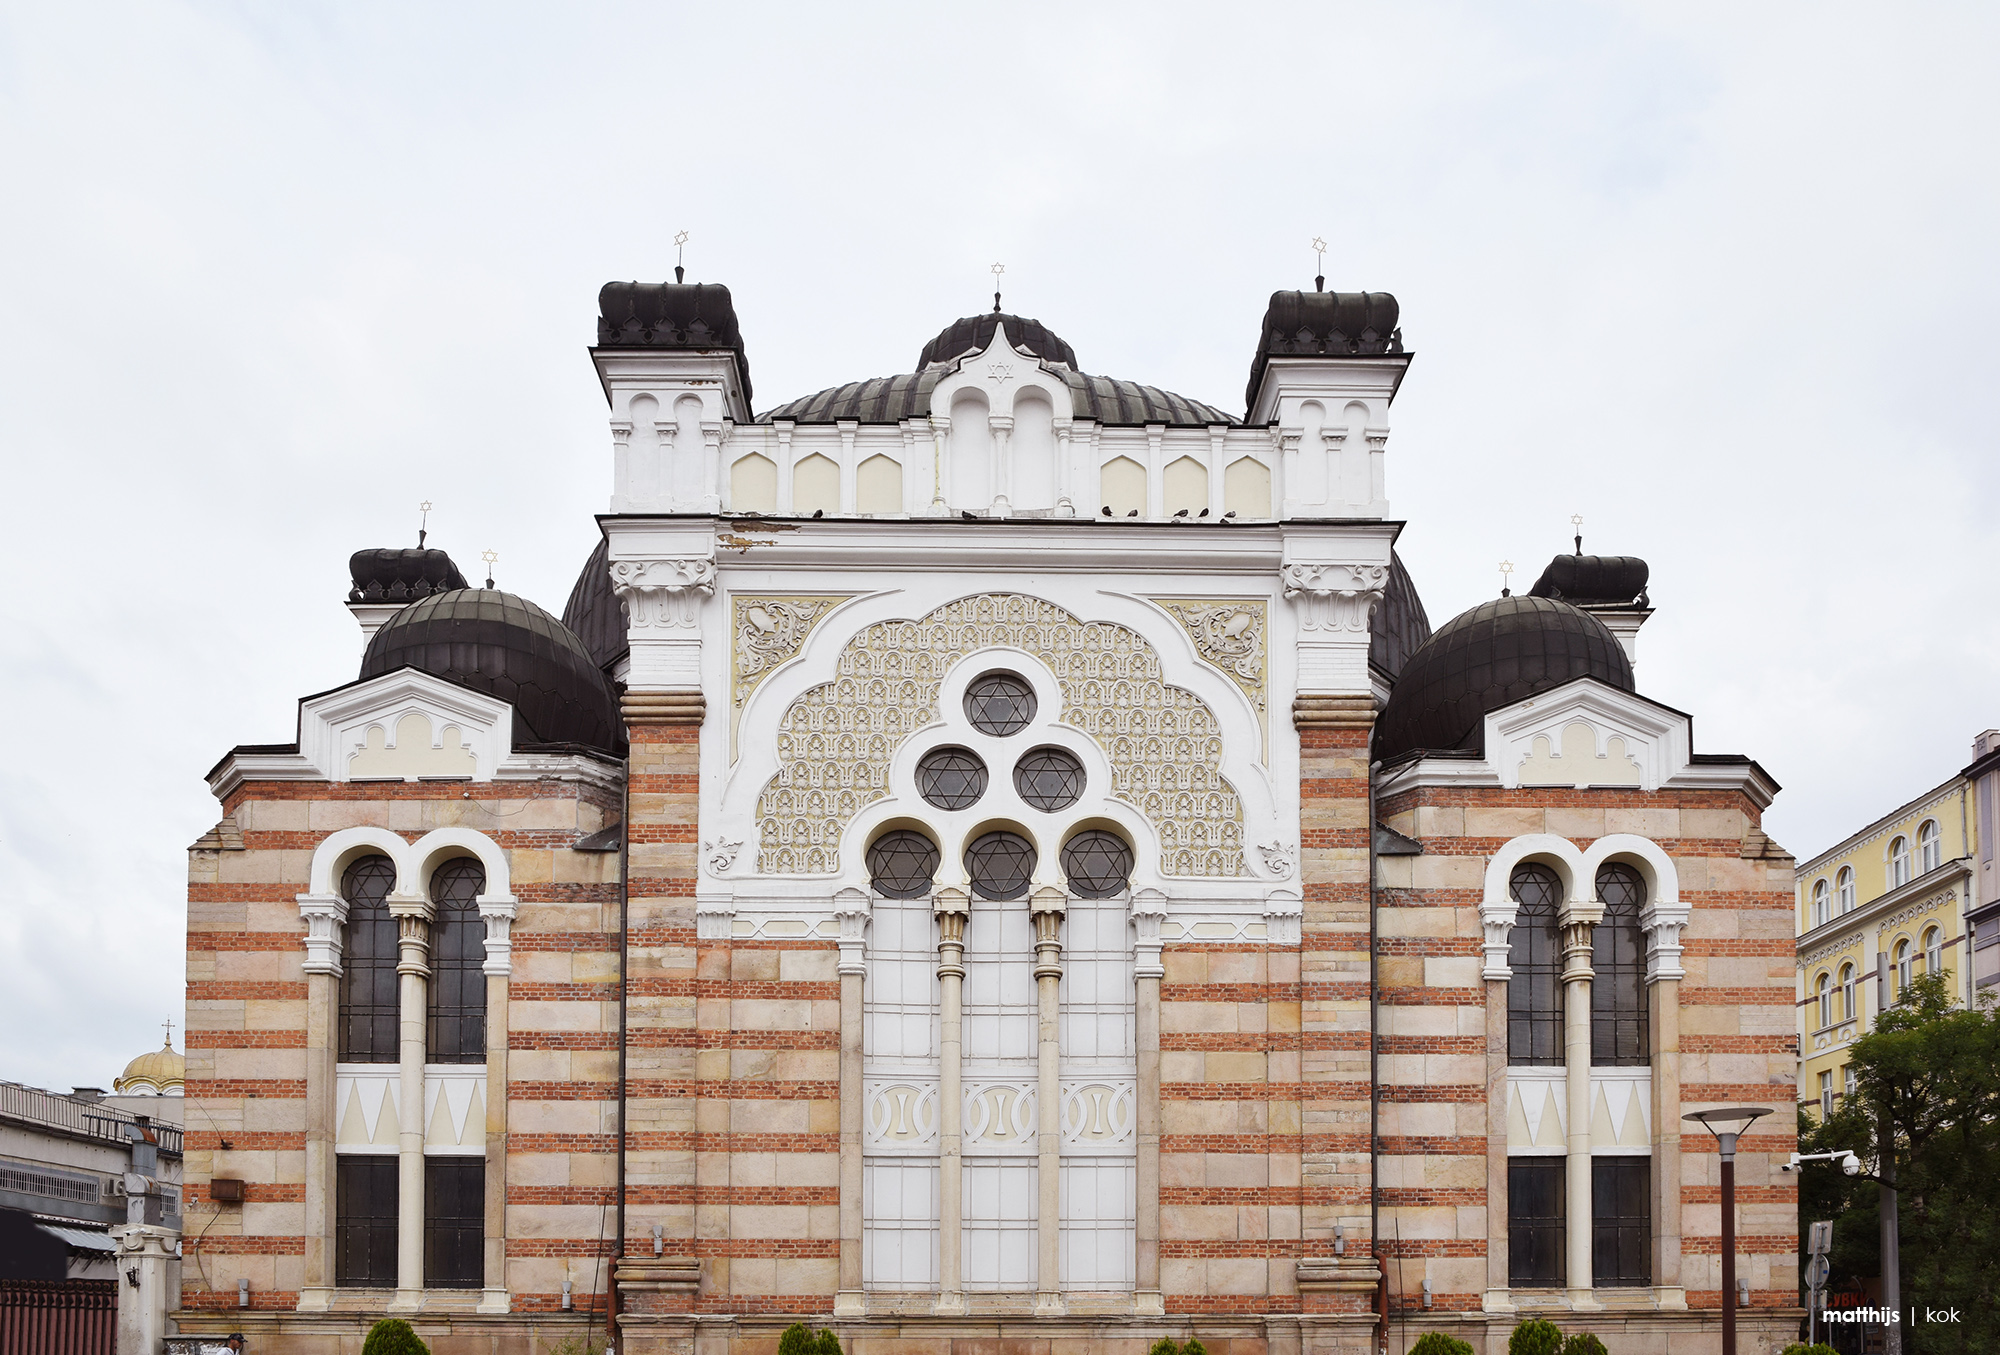 Synagogue, Sofia, Bulgaria | Photo by Matthijs Kok